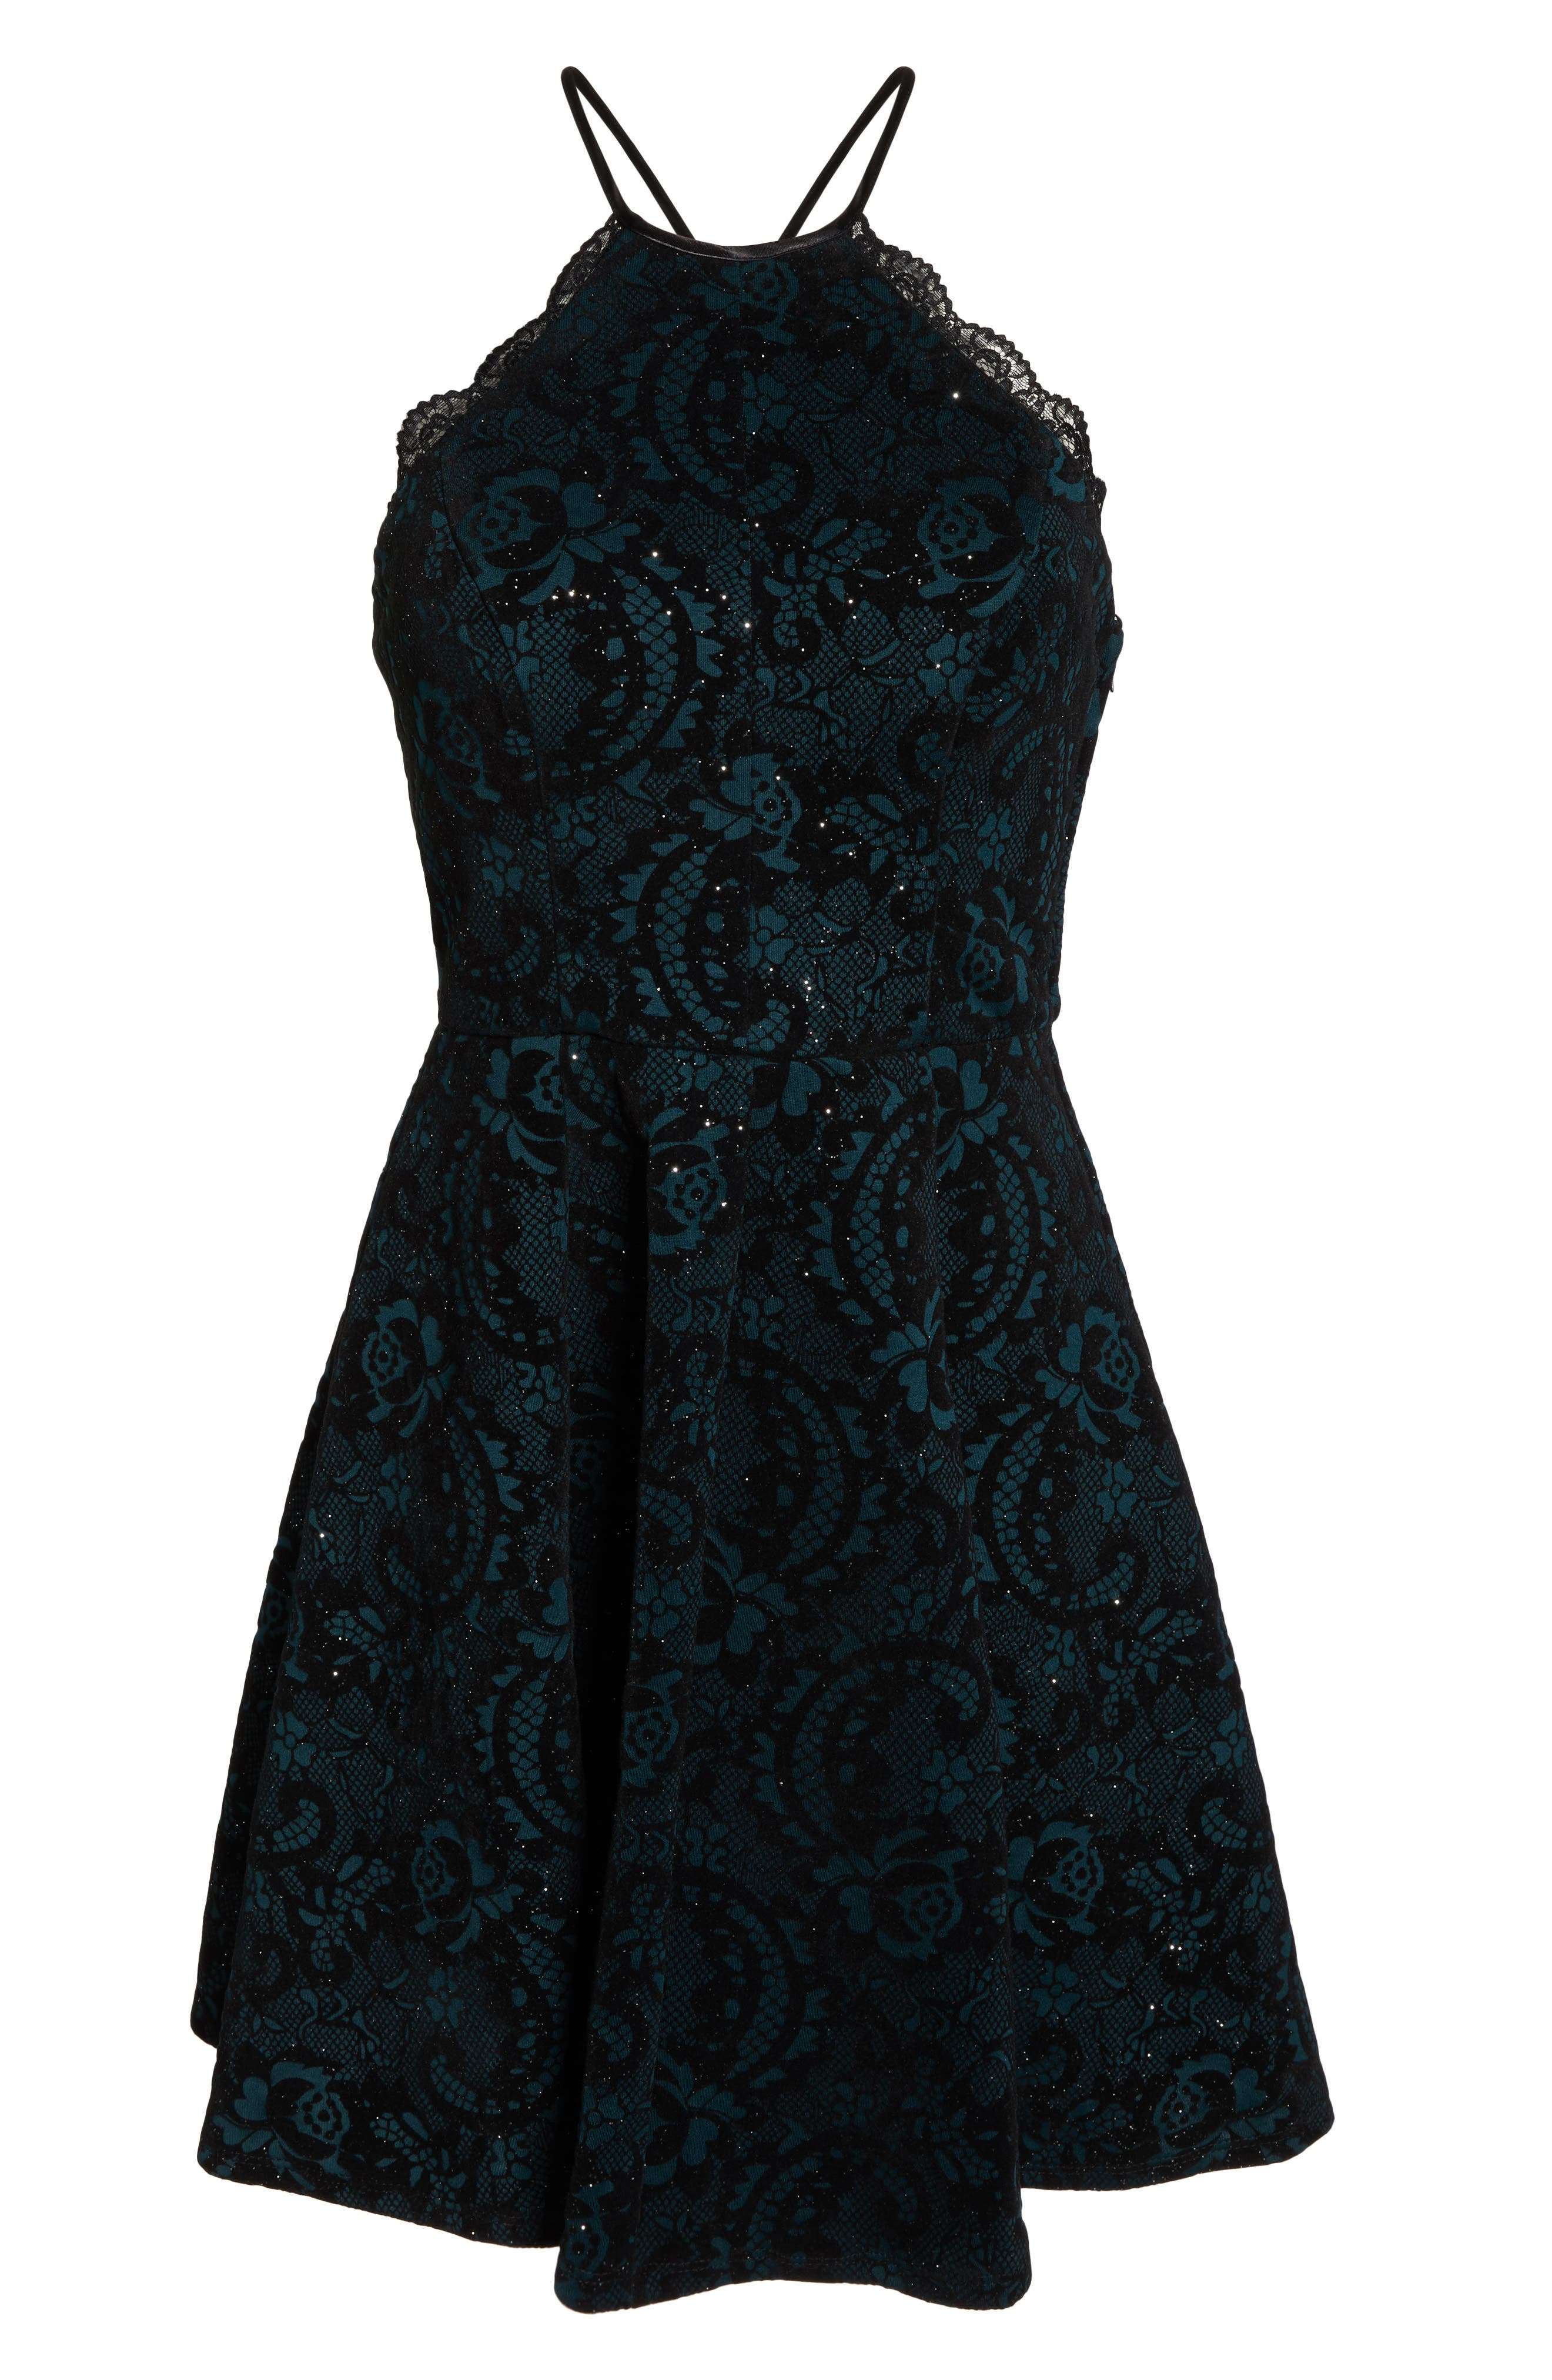 Flocked Fit & Flare Party Dress,                             Alternate thumbnail 7, color,                             BLACK/ TEAL